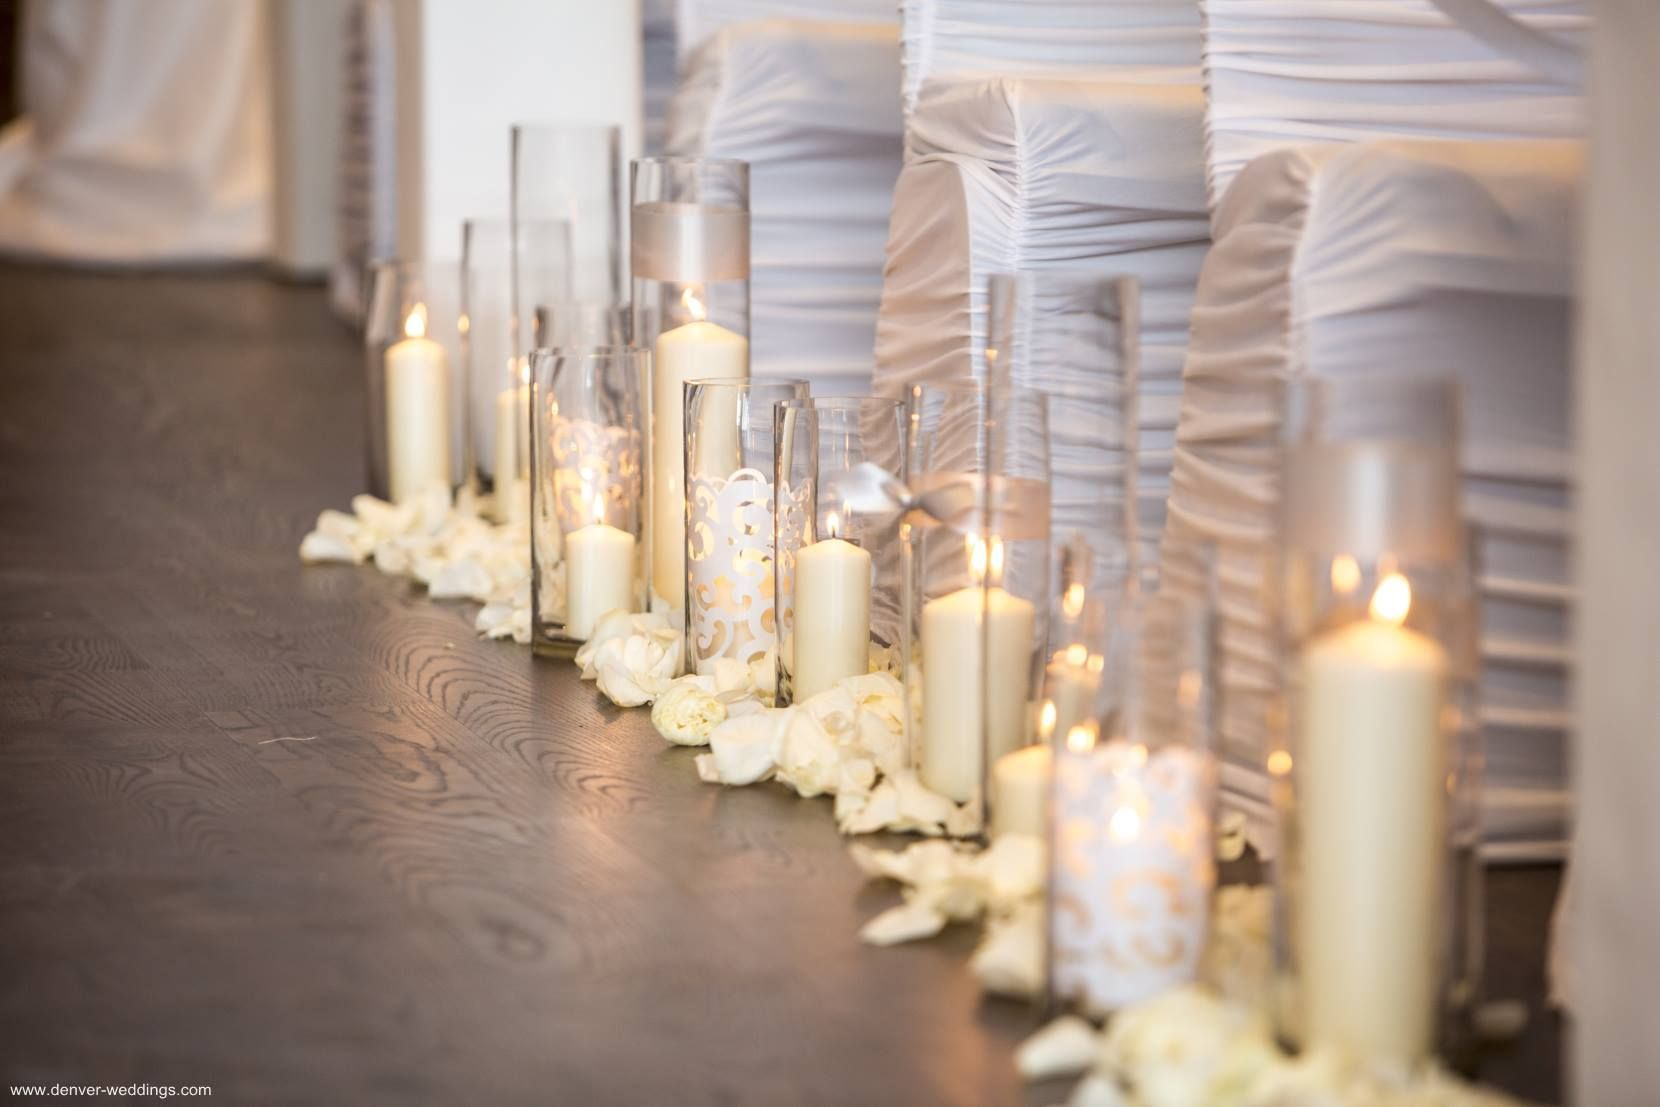 candlelight wedding ceremony candles down aisle wedding ceremony aisle decor pinterest. Black Bedroom Furniture Sets. Home Design Ideas